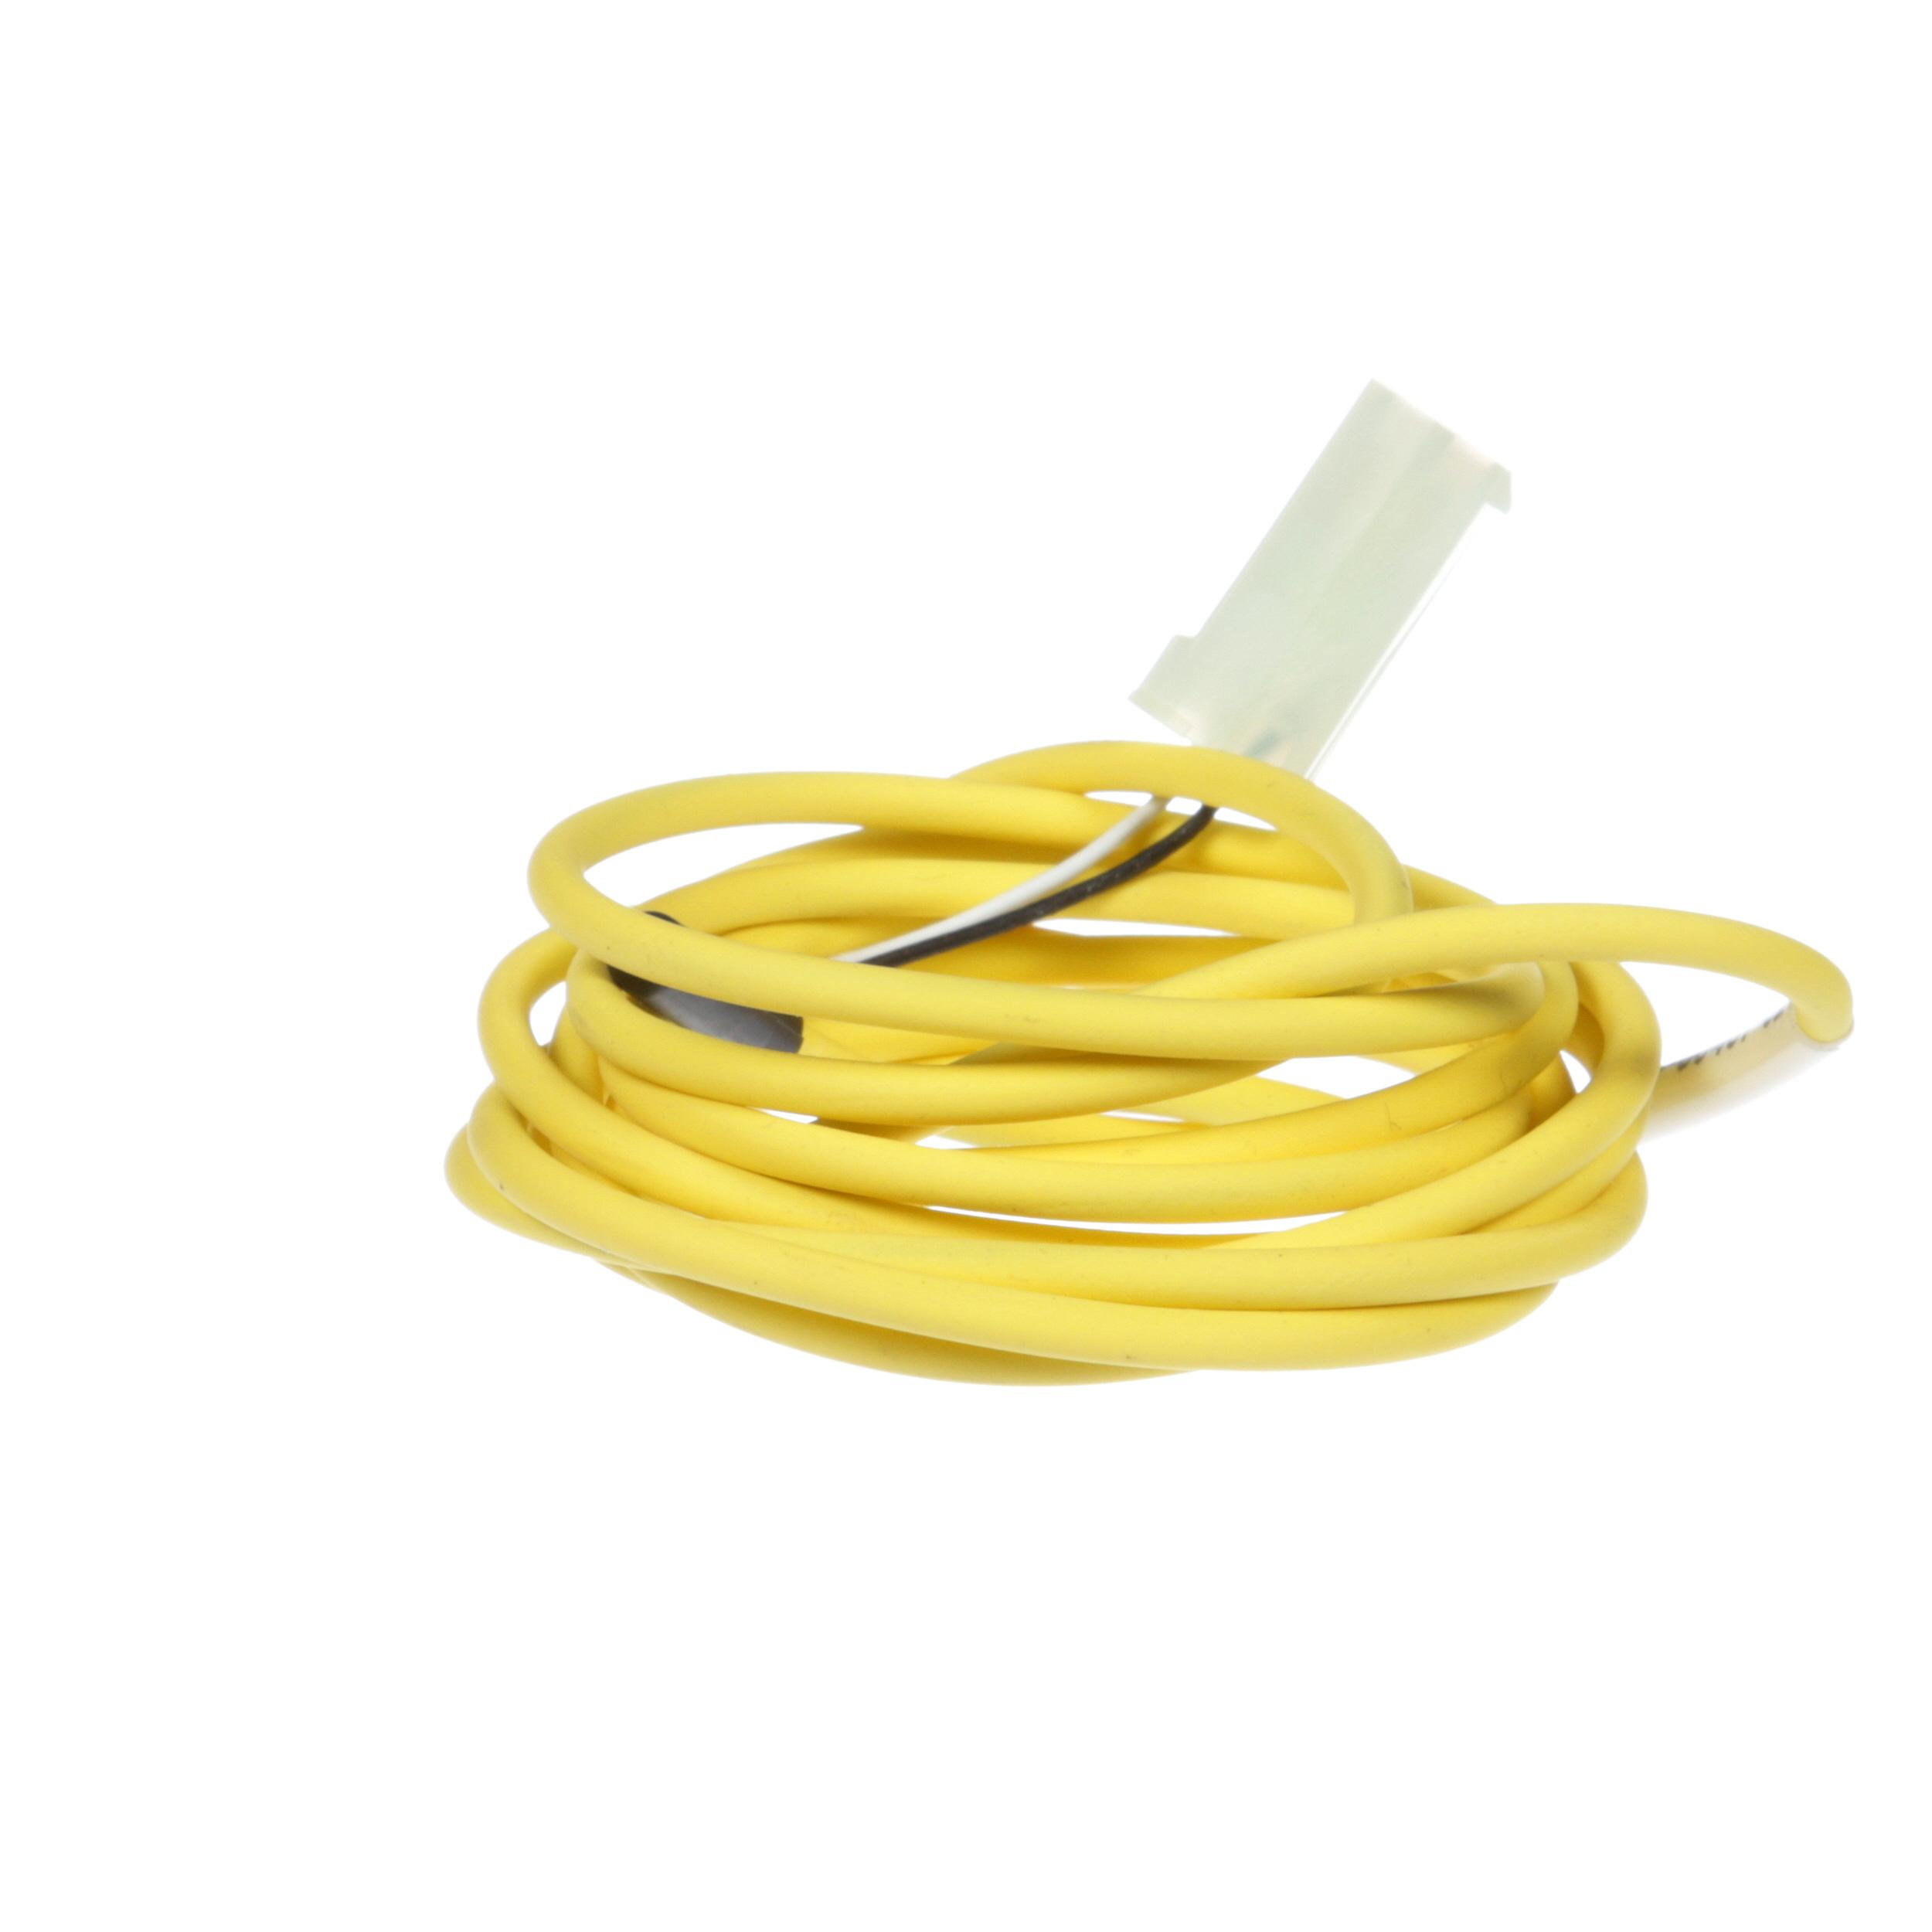 TRAULSEN DISCHARGE SENSOR YELLOW 74 IN